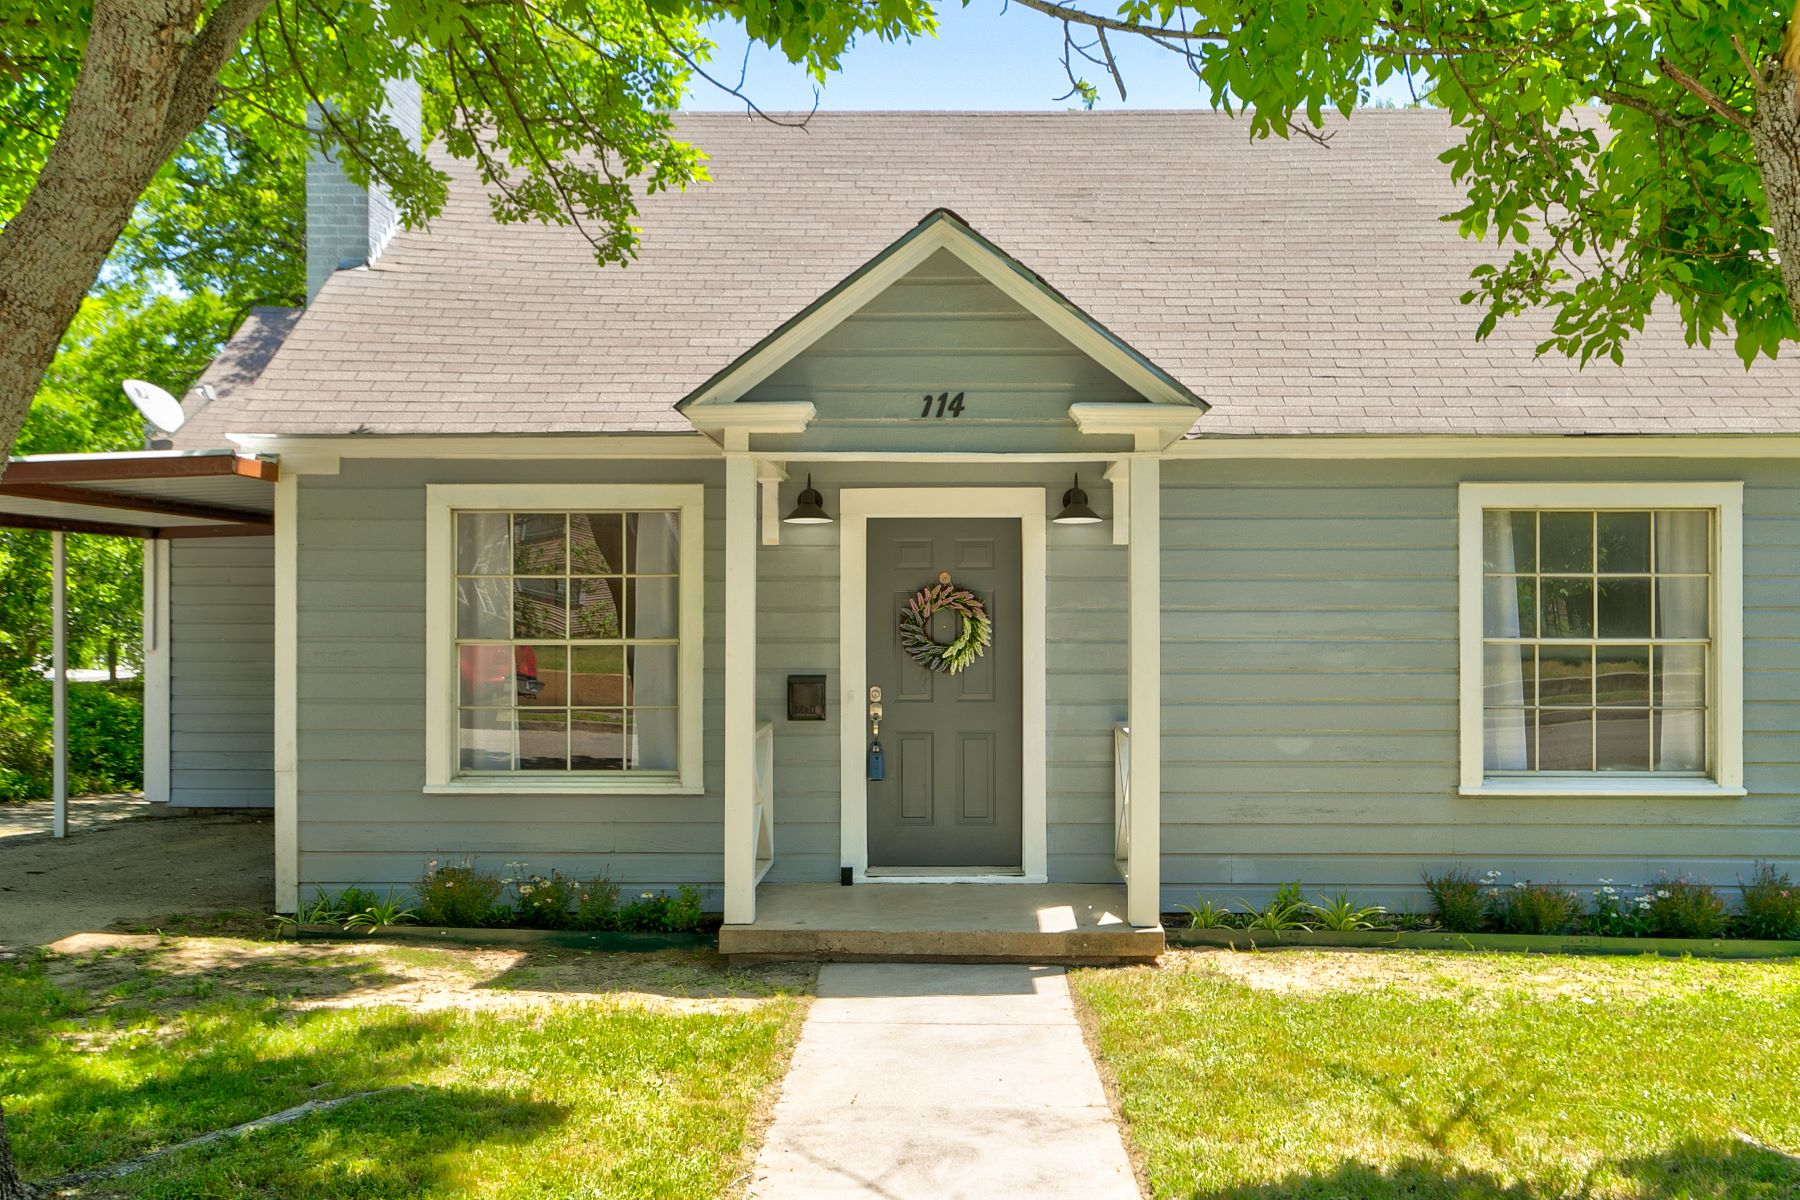 Single Family Homes for Sale at Adorably updated 3 bedroom 114 N Boundary Street, Weatherford, Texas 76086 United States